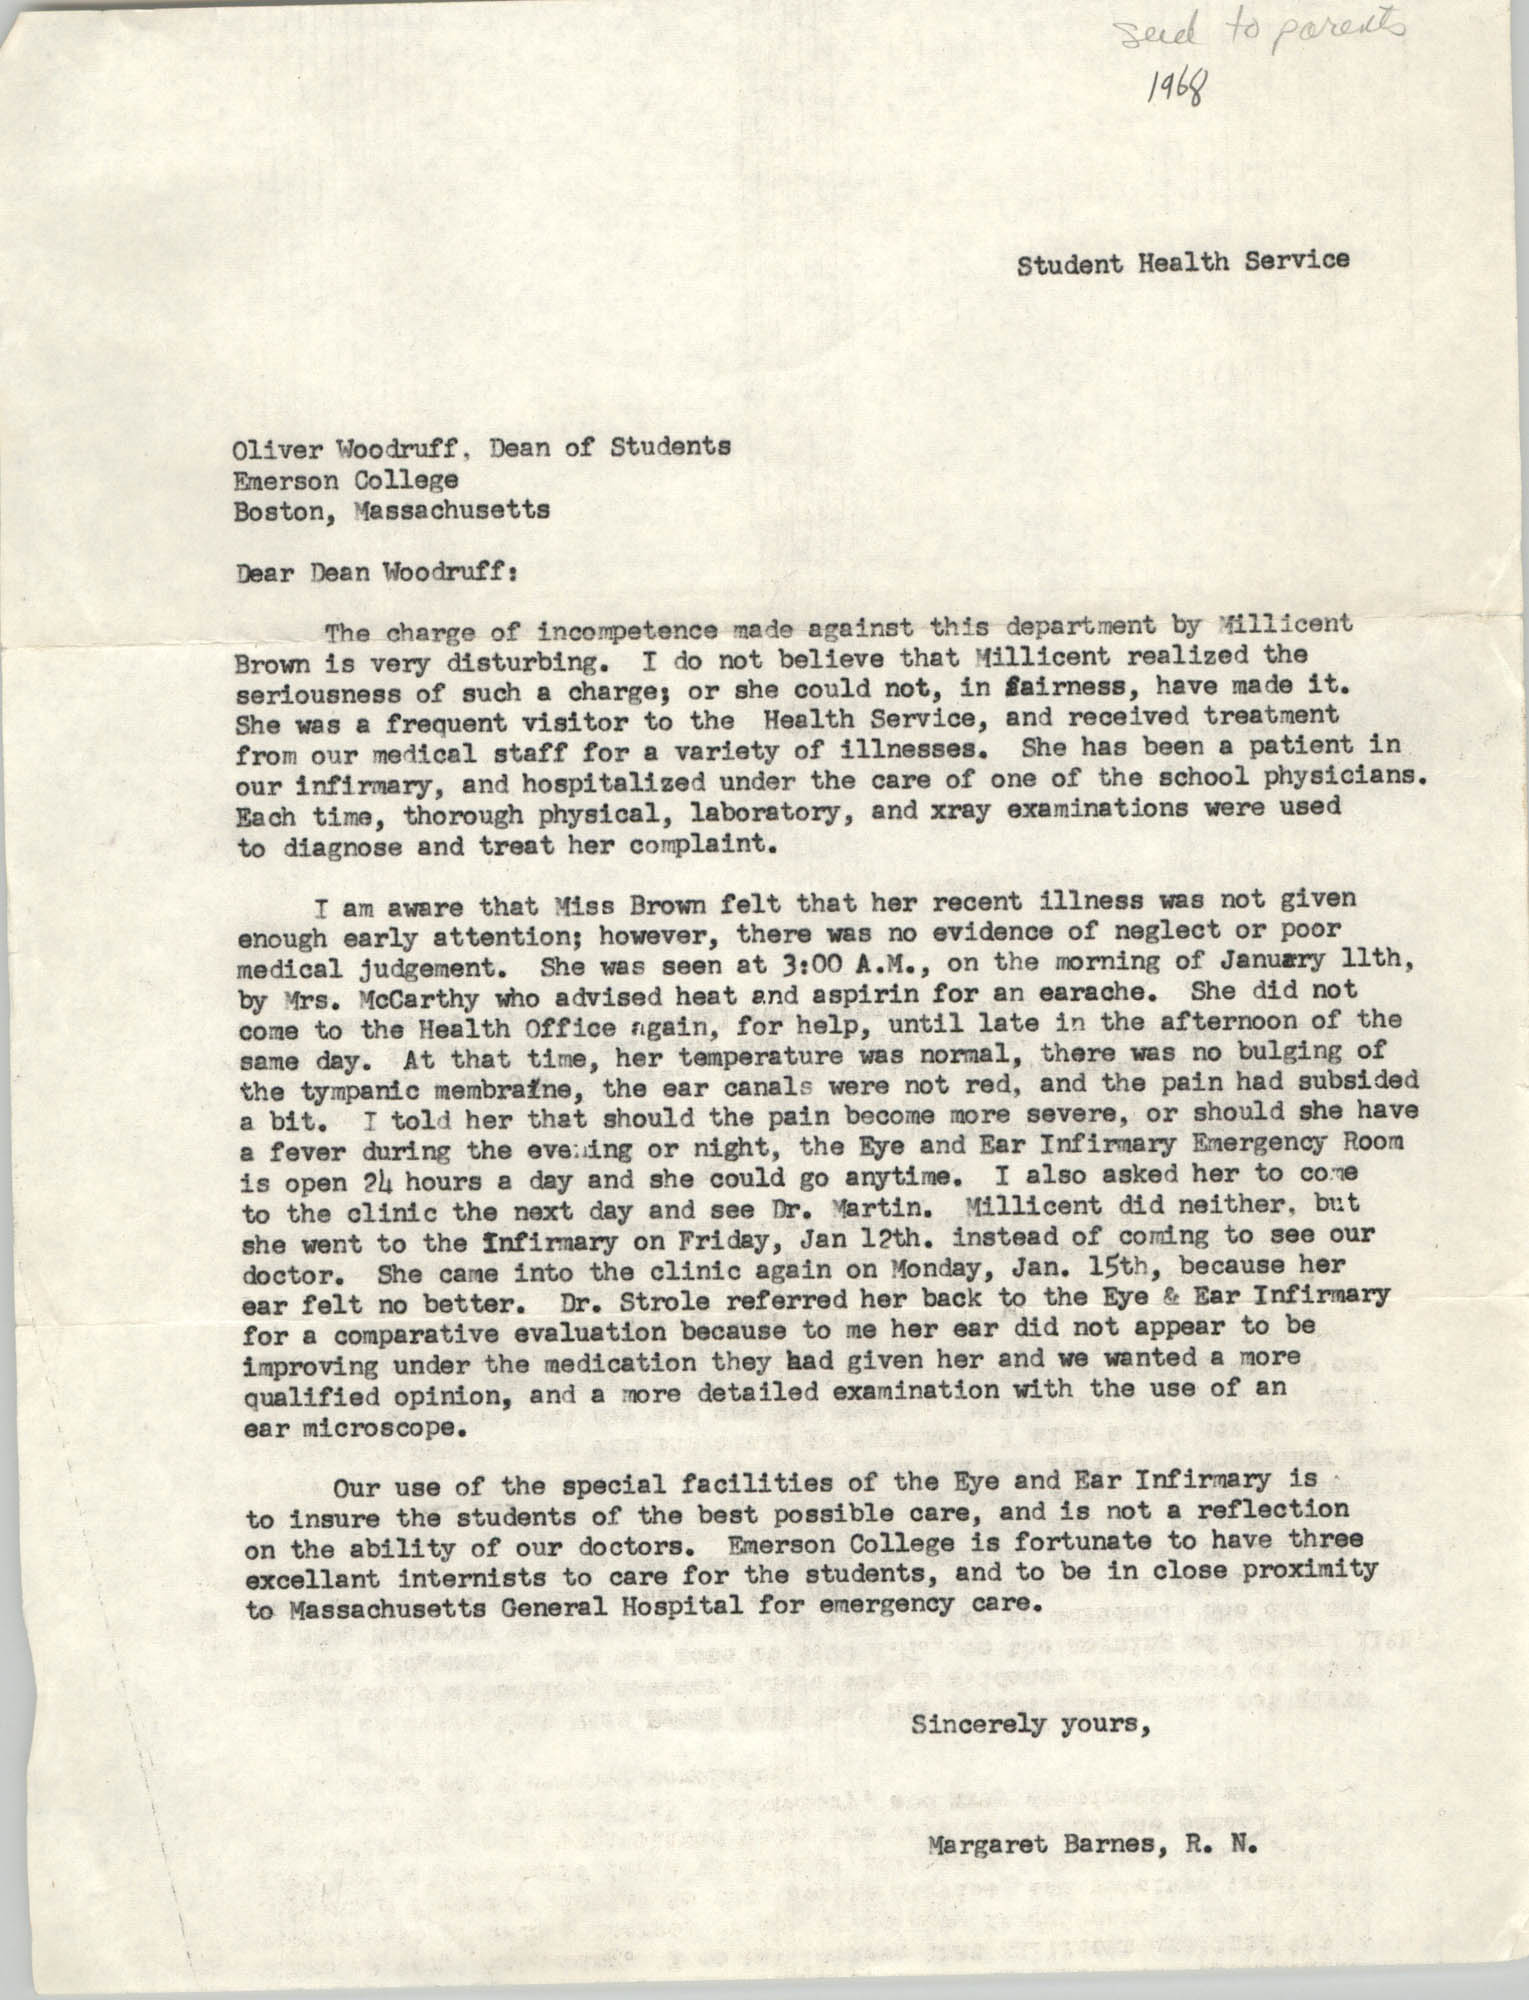 Letter from Margaret Barnes to Oliver Woodruff, 1968